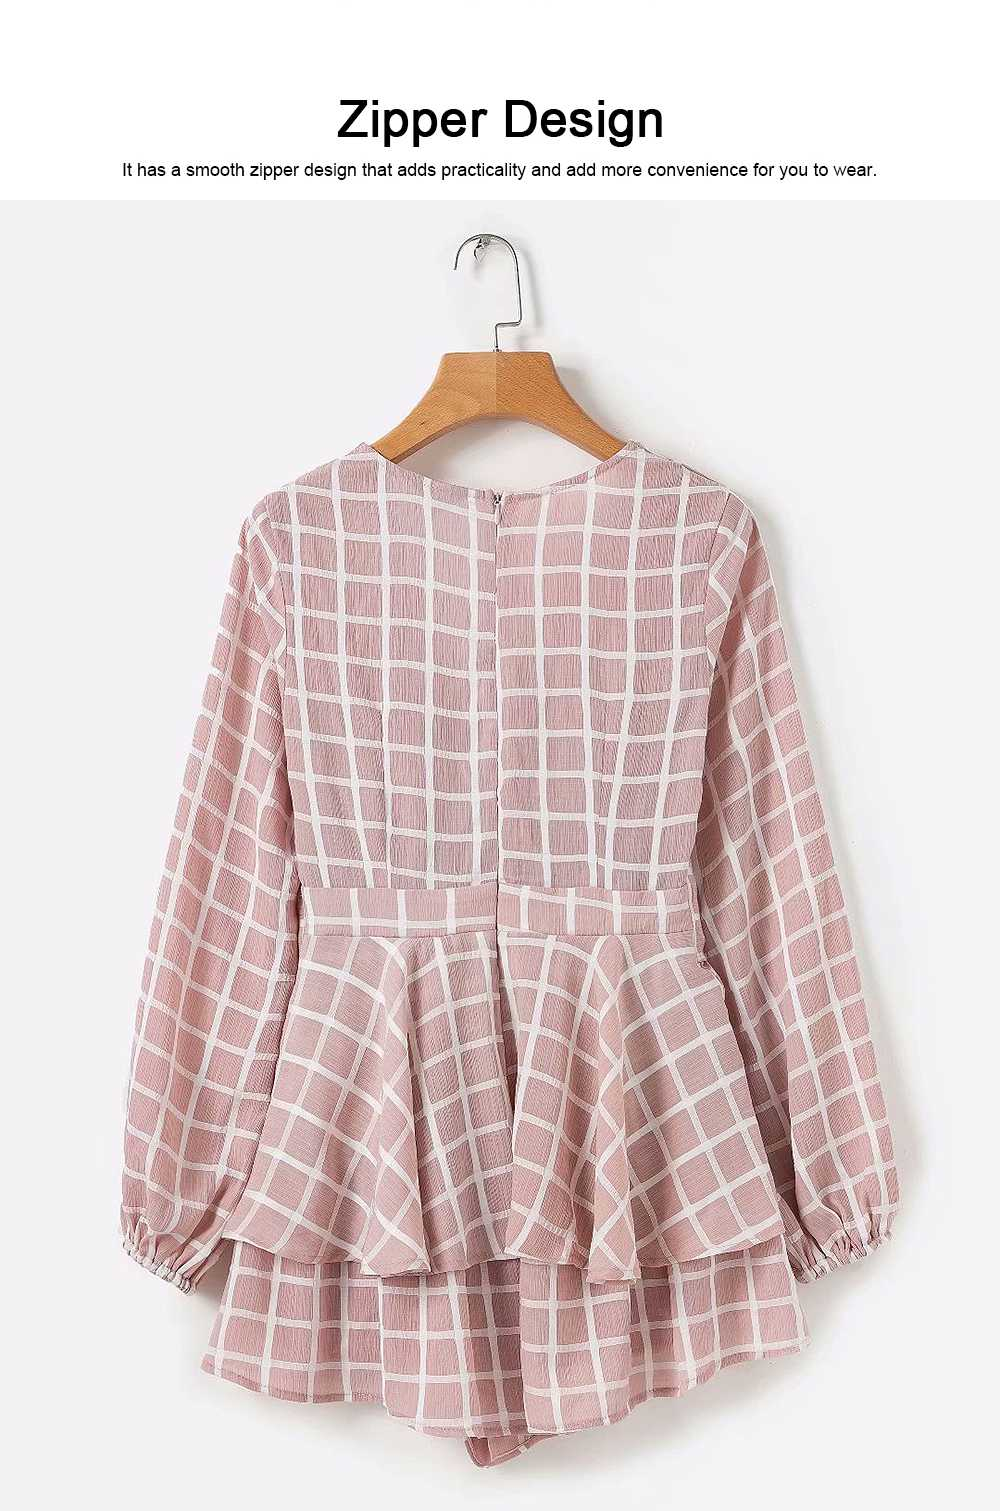 Women's Long Sleeve Plaid Jumpsuit Recreational Shorts for Lady, Cardigan V Collar Zipper Bowknot on the Back Long-sleeve Siamese Trousers 4